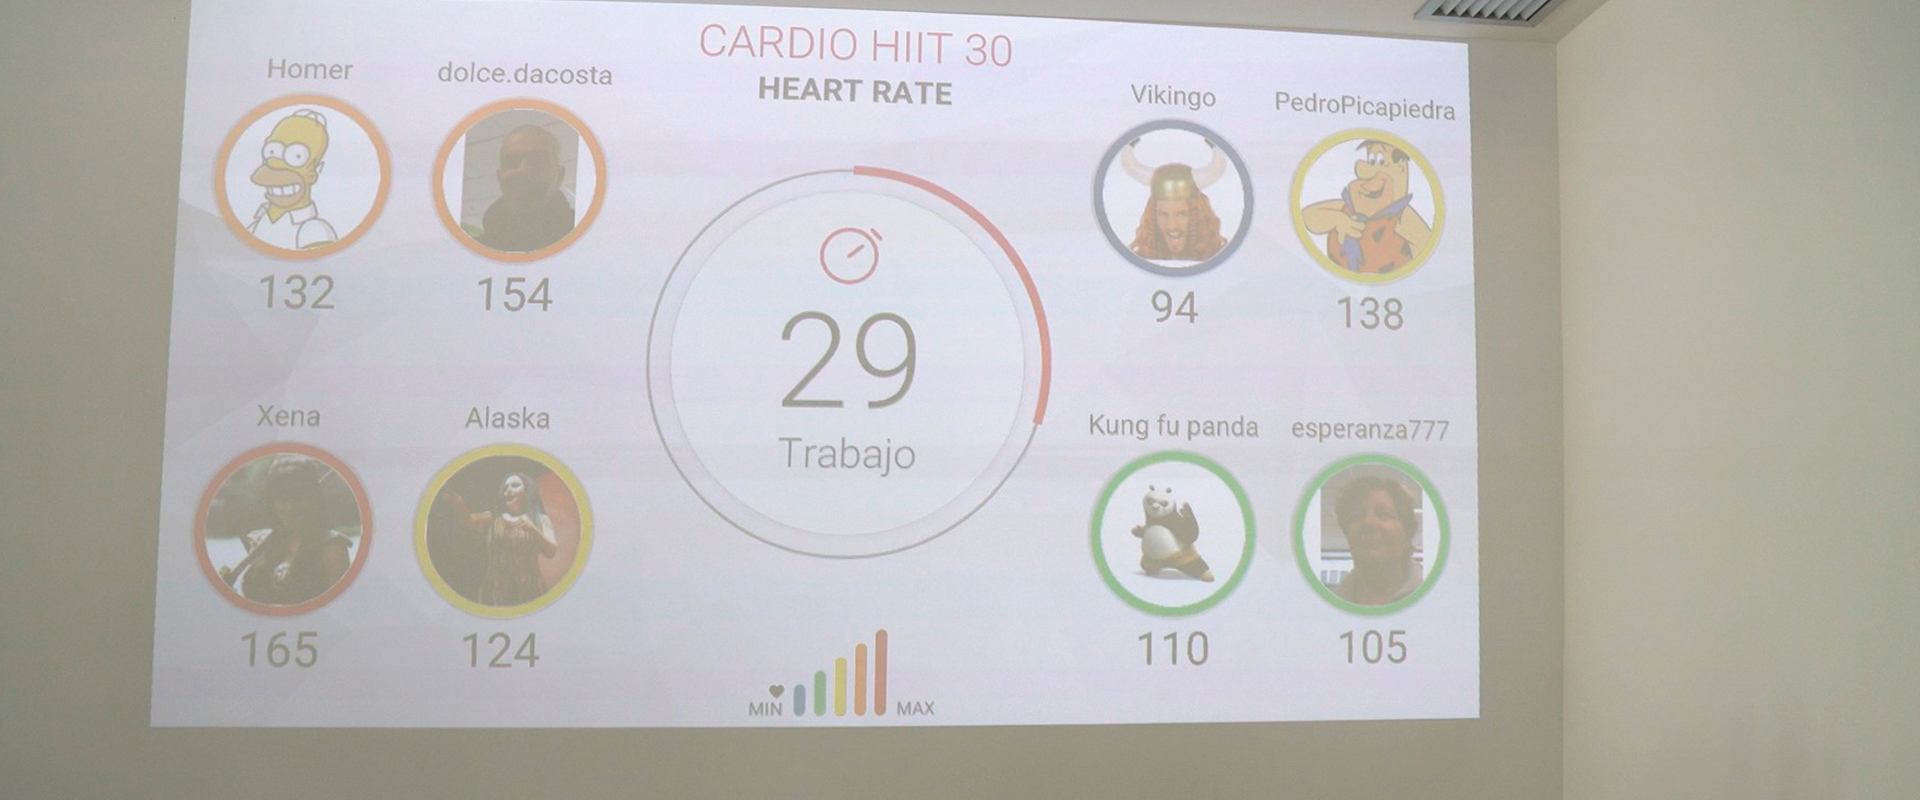 Has provat ja les classes de Cardio HIIT?